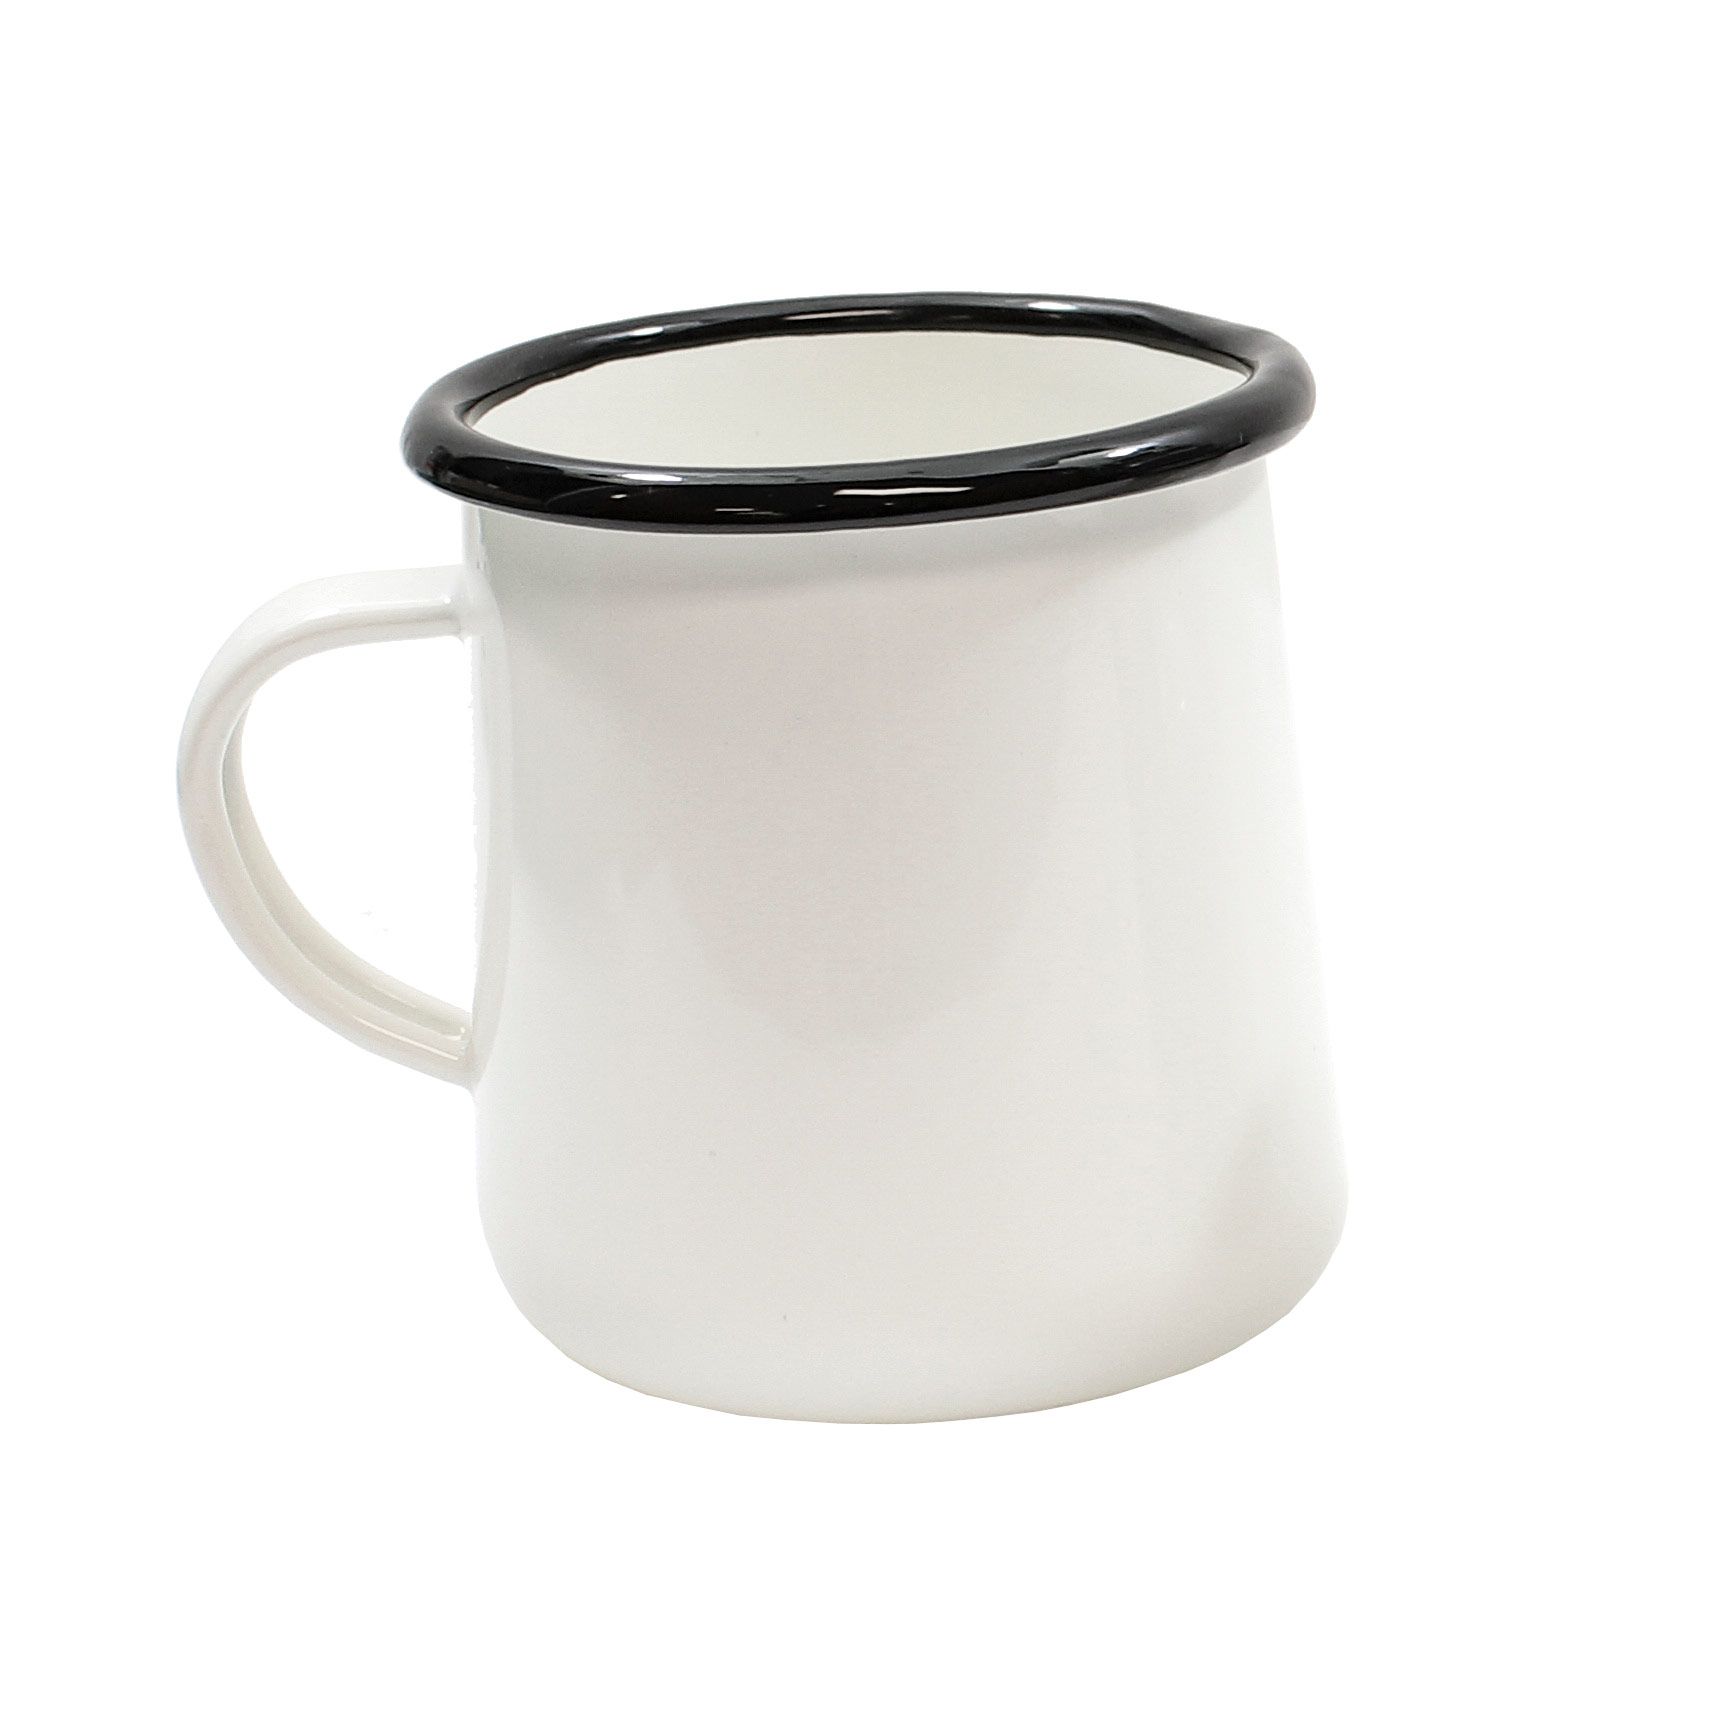 TableCraft Products 80008 mug, metal